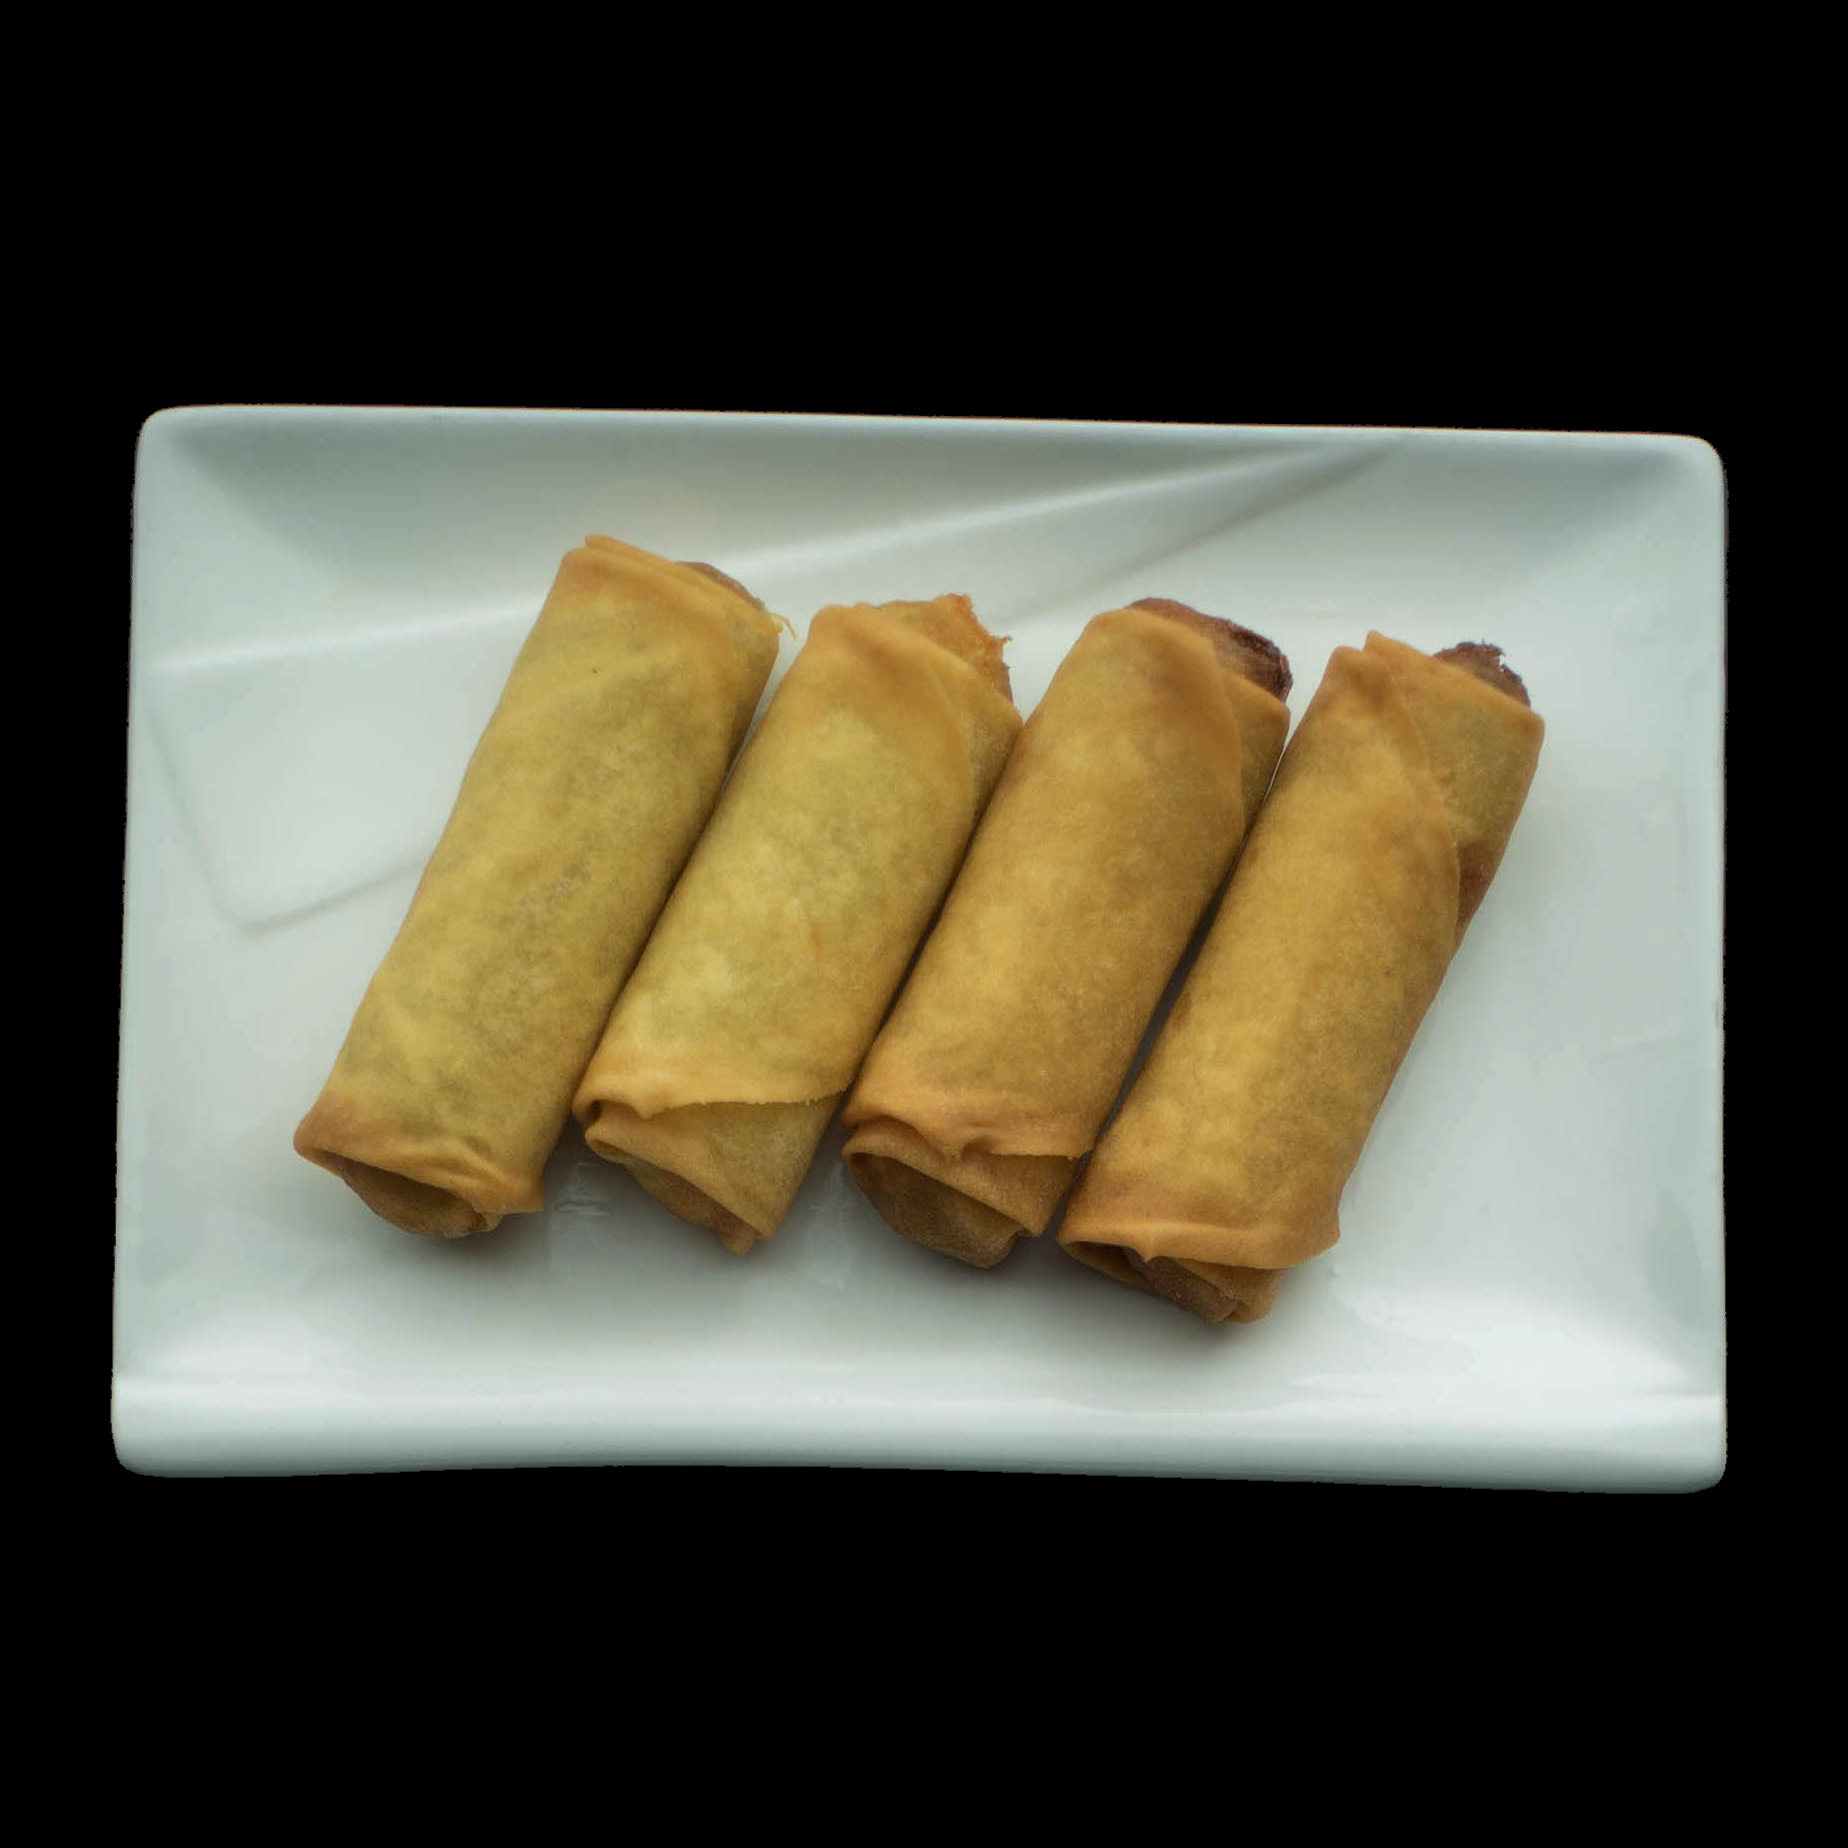 38. 素春卷 Vegetable Spring Rolls Image